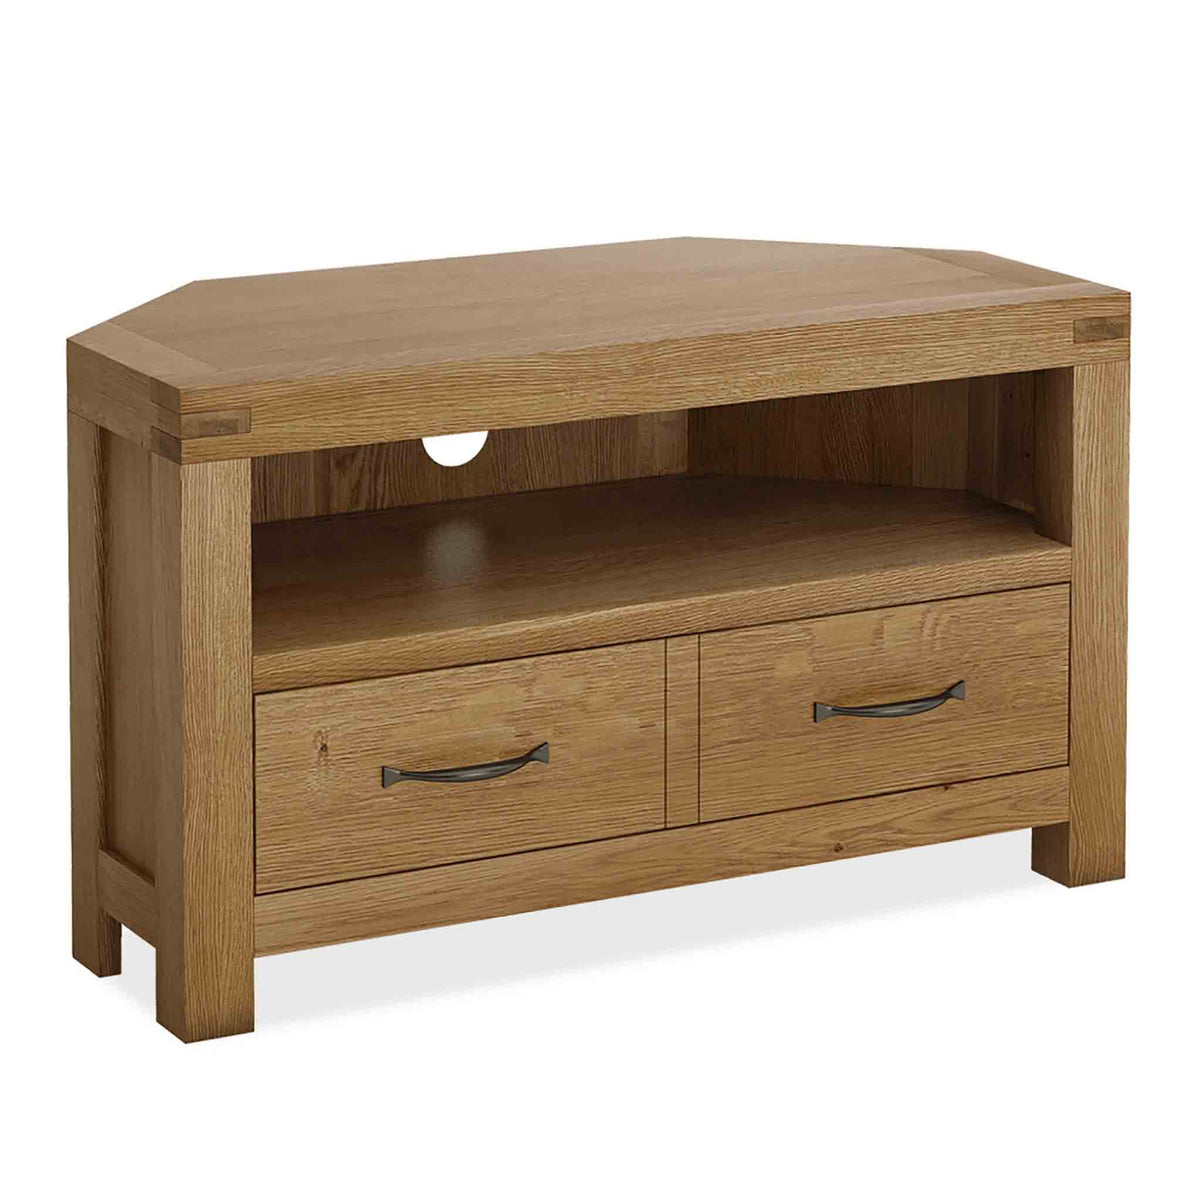 The Abbey Grande Oak Corner TV Stand by Roseland Furniture